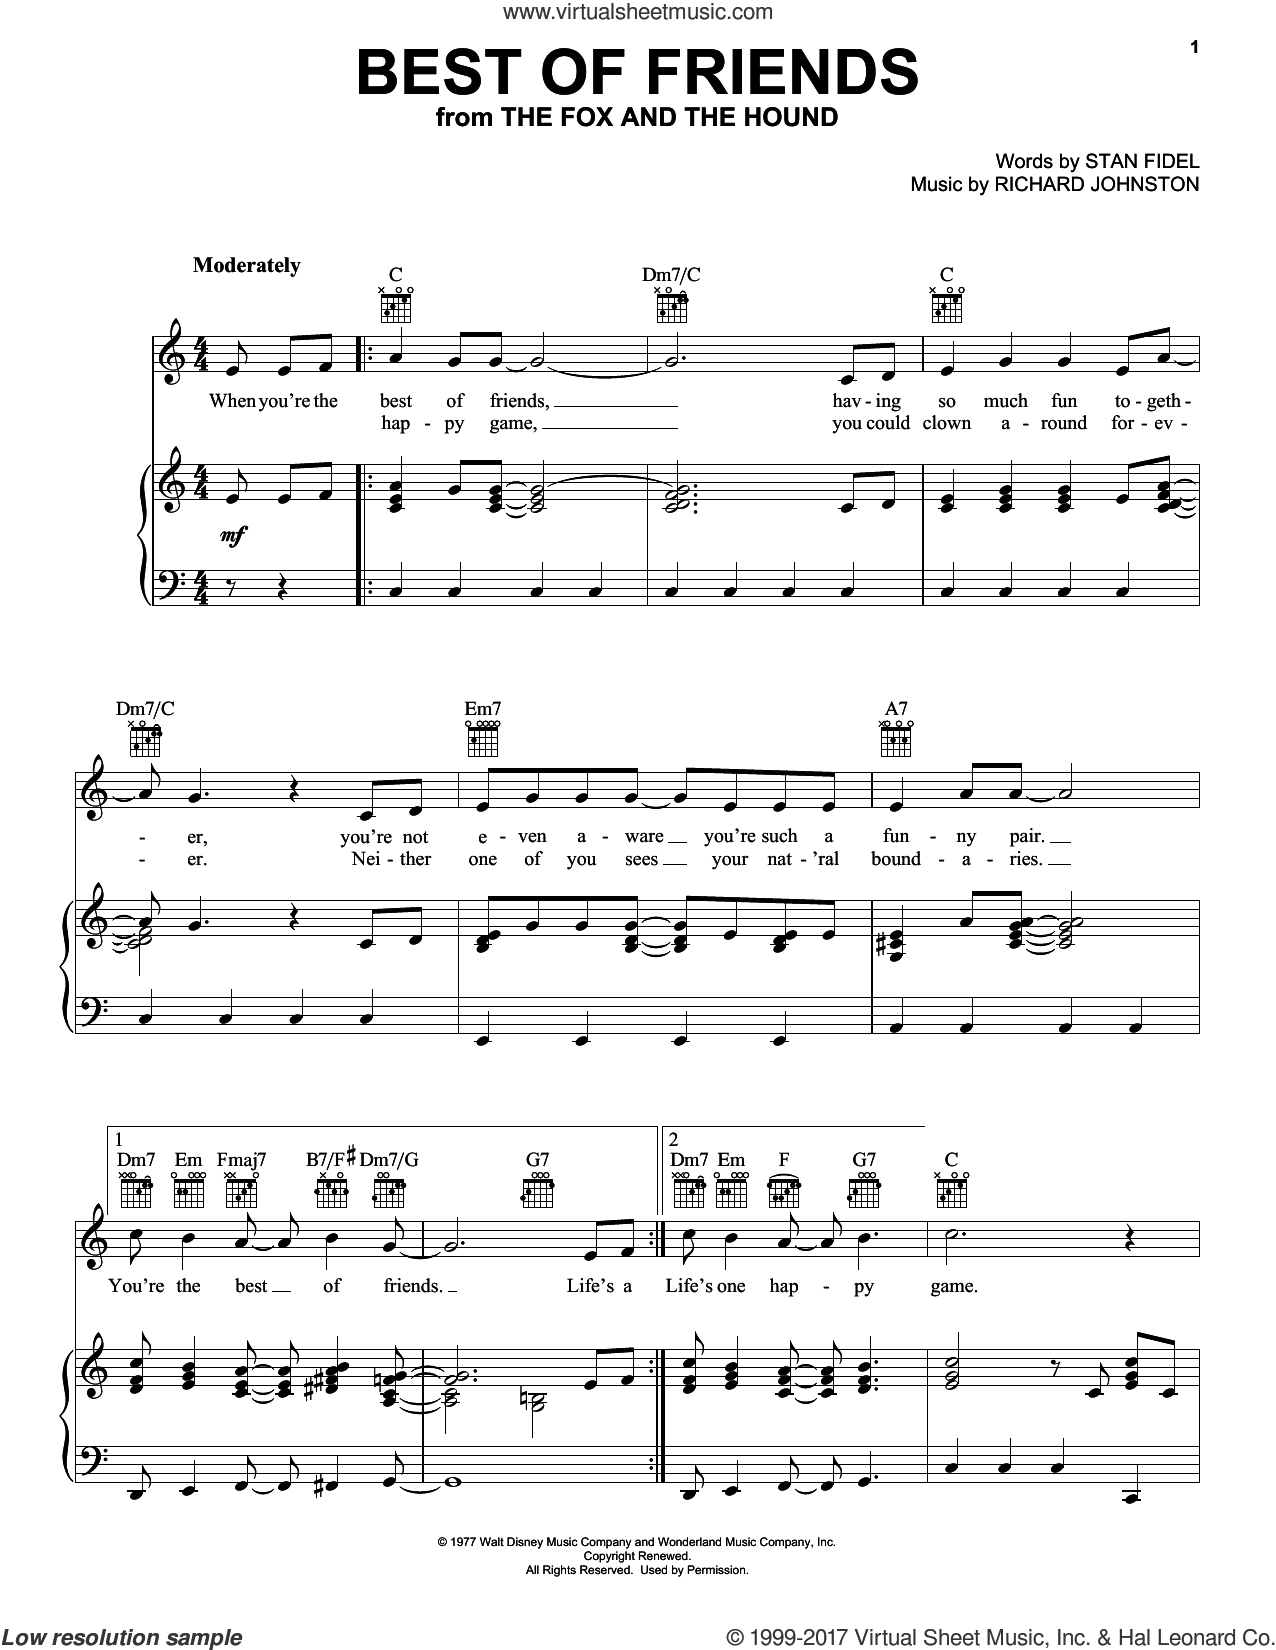 Best Of Friends sheet music for voice, piano or guitar by Stan Fidel and Richard Johnston, intermediate voice, piano or guitar. Score Image Preview.